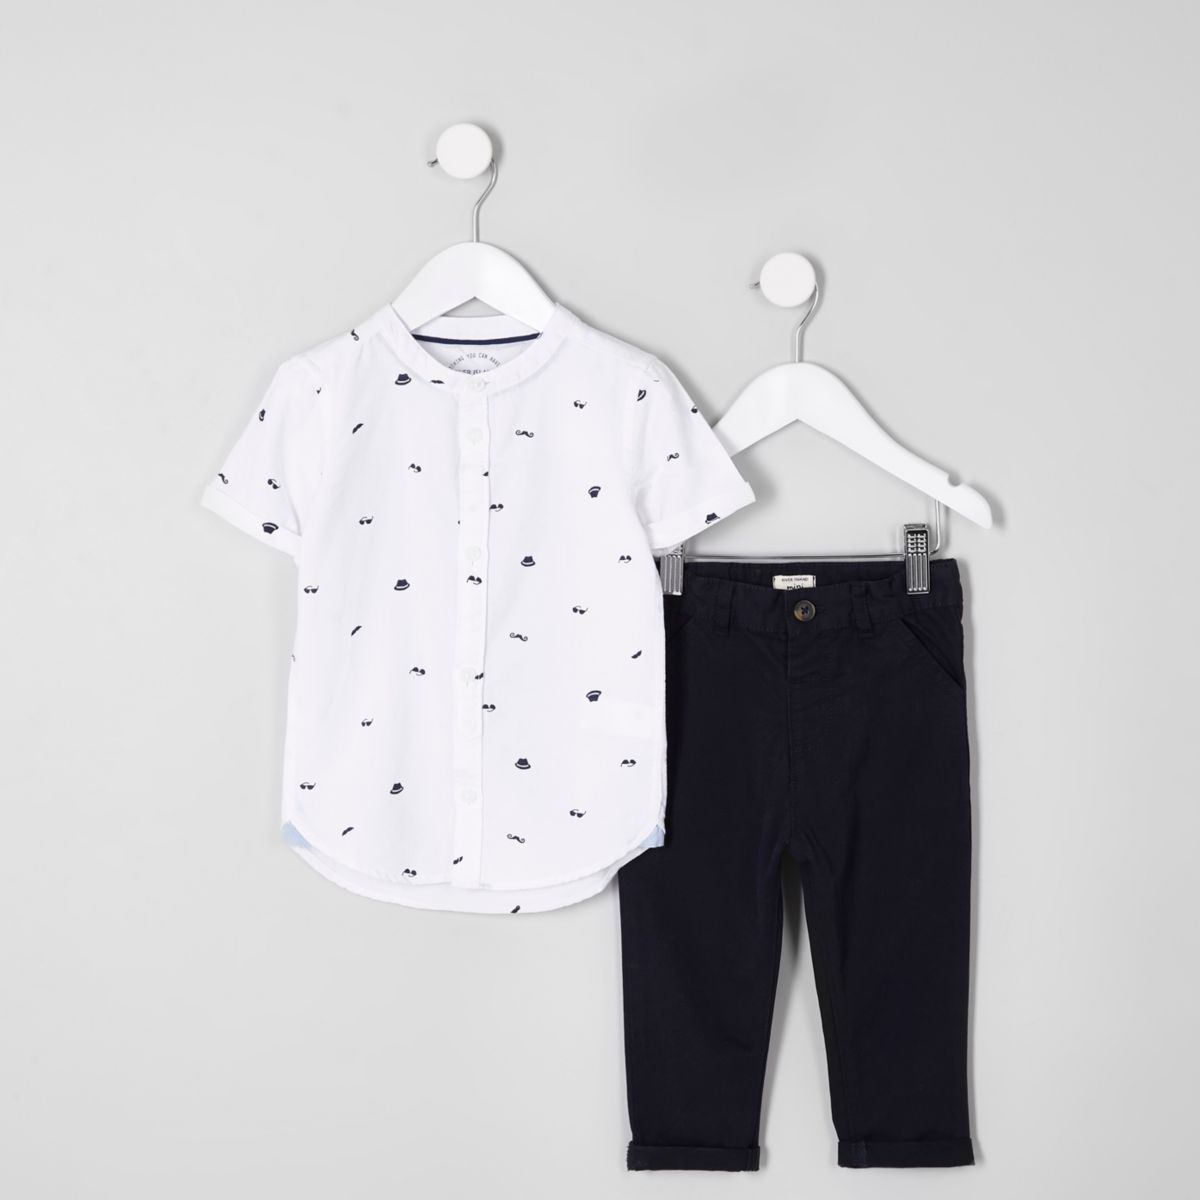 Mini boys white hat shirt and chinos outfit